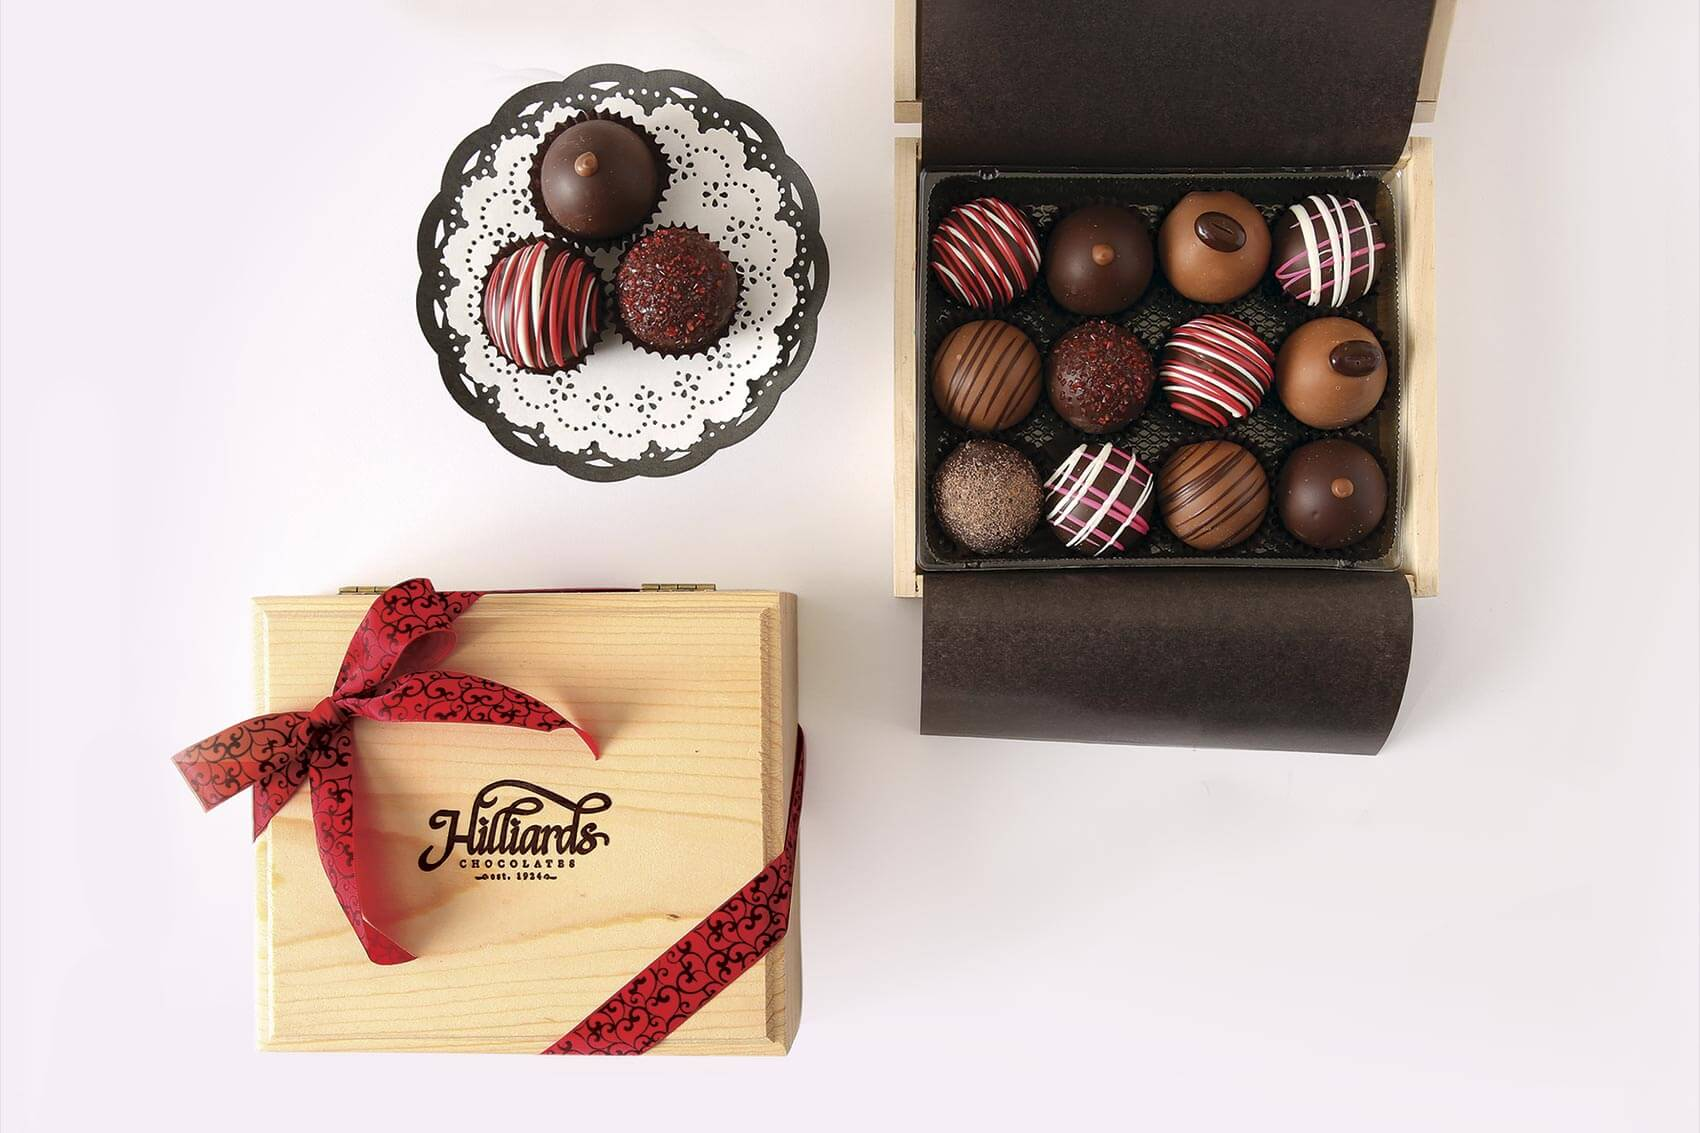 Hilliards Chocolates history is as sweet as their candy.